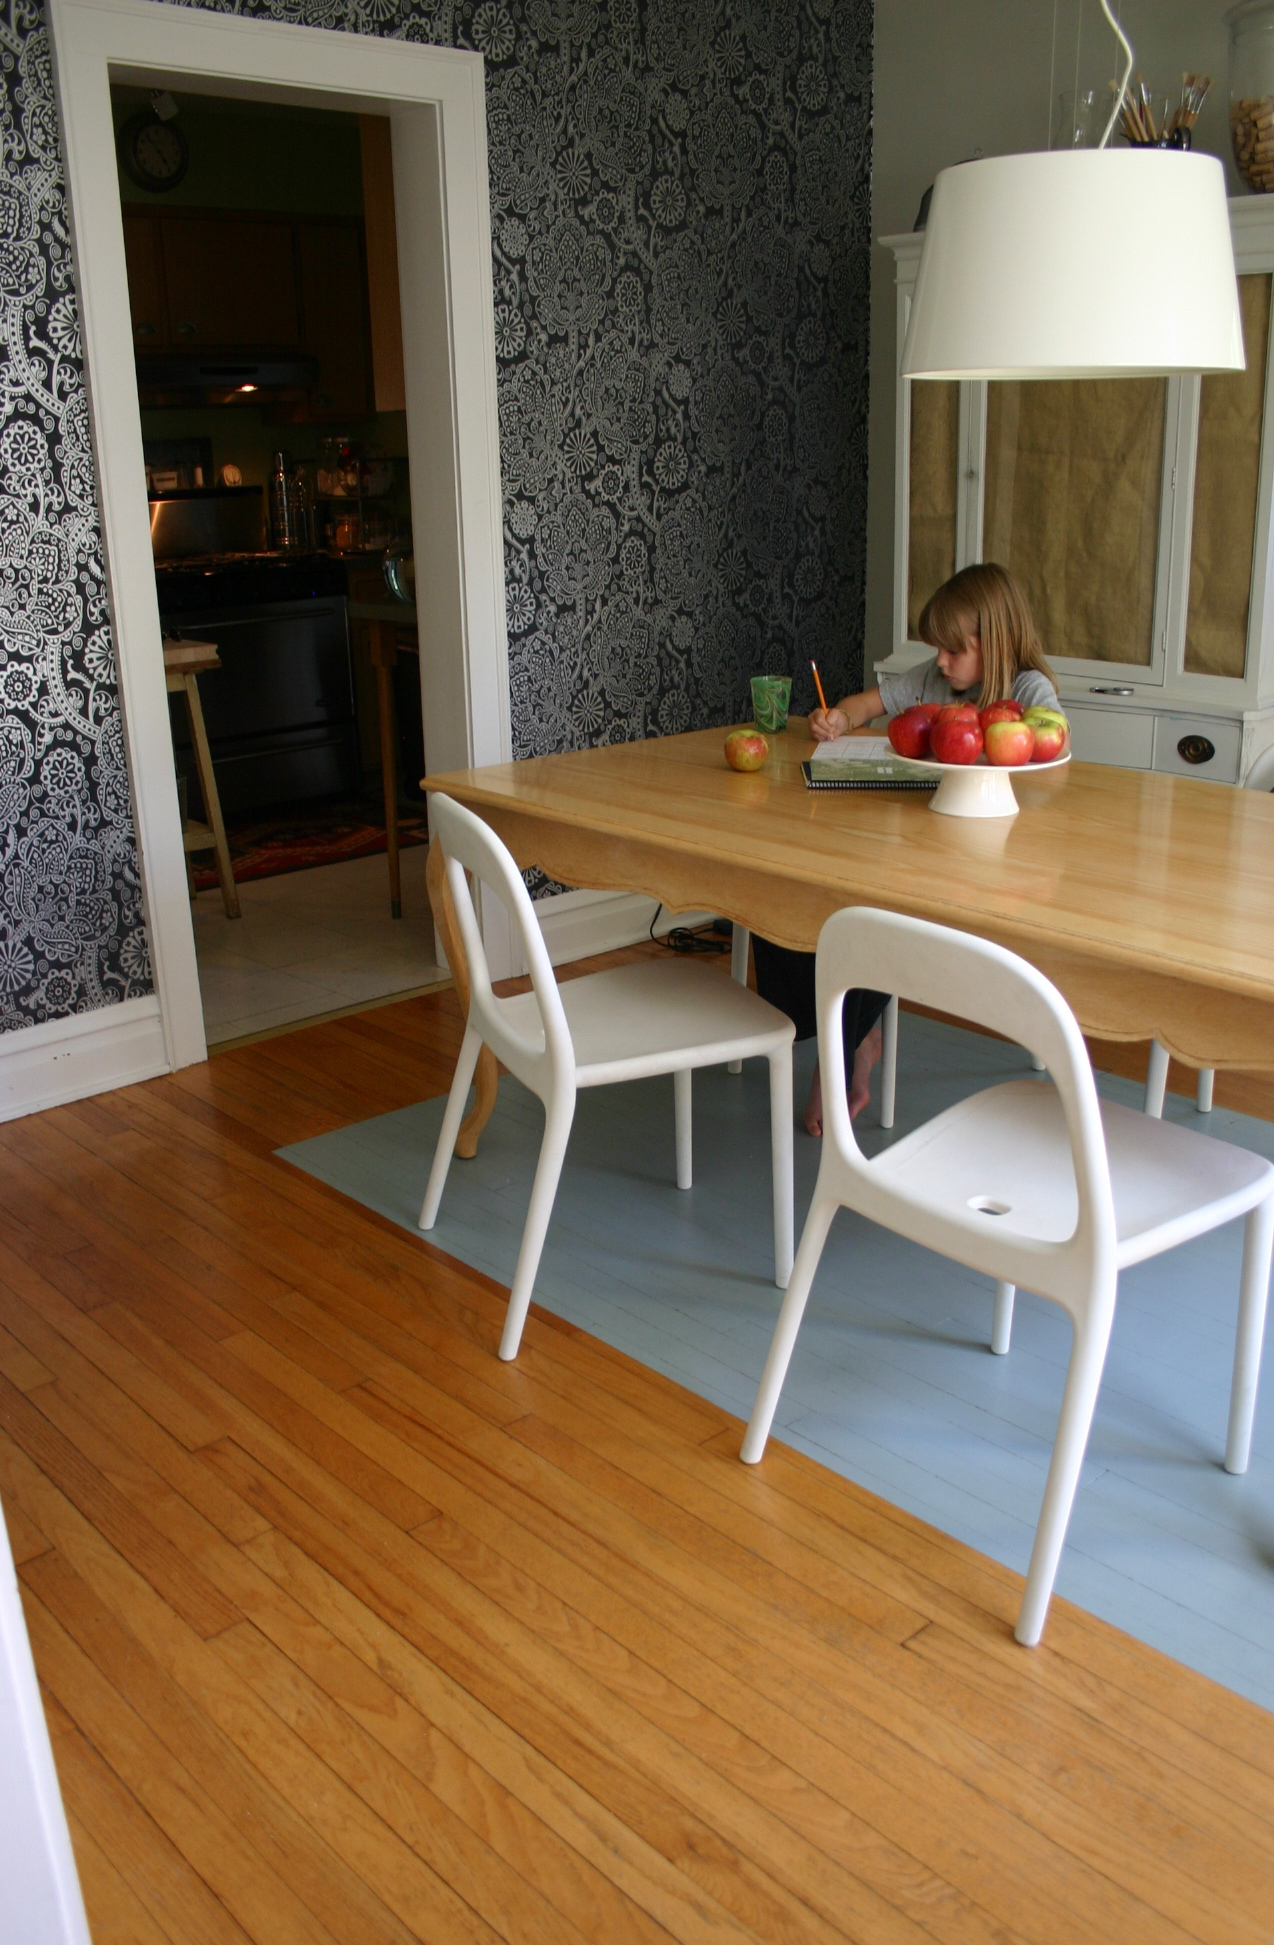 With children in the house a painted dining room floor is the